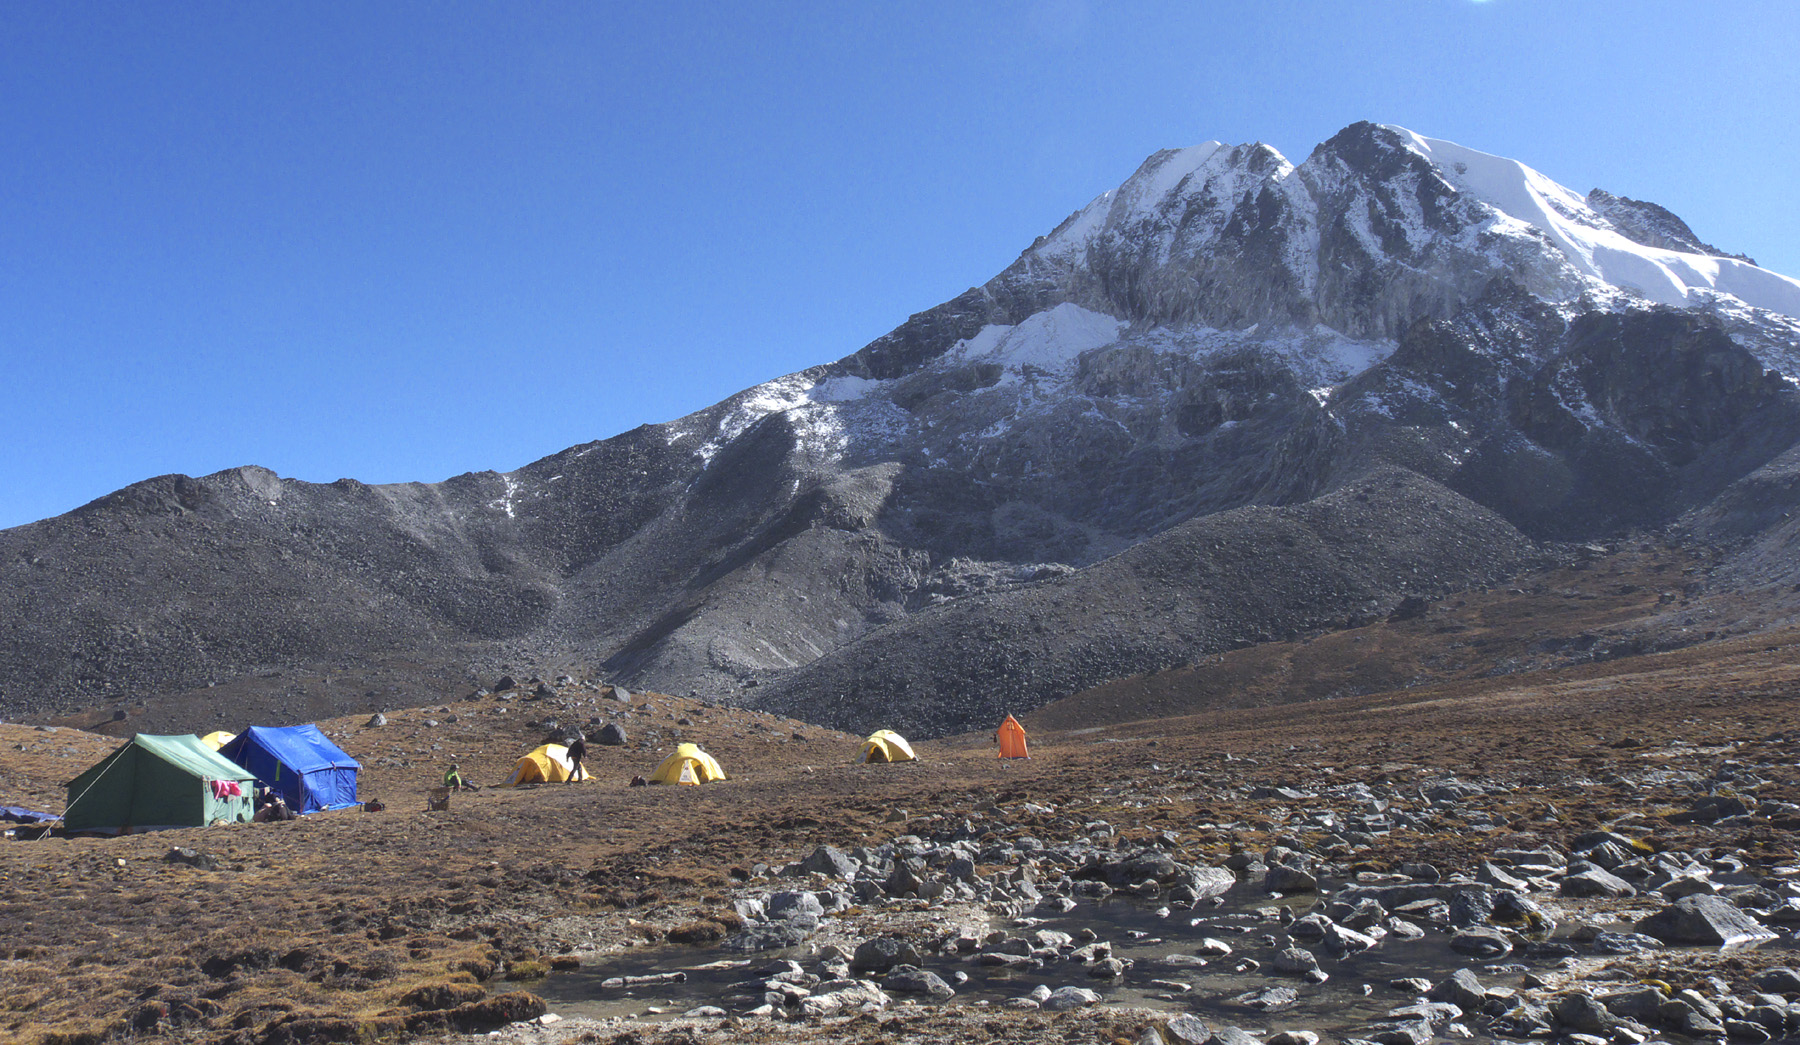 Base camp at ca 5,200m and Peak 5,777m traversed from right to left.